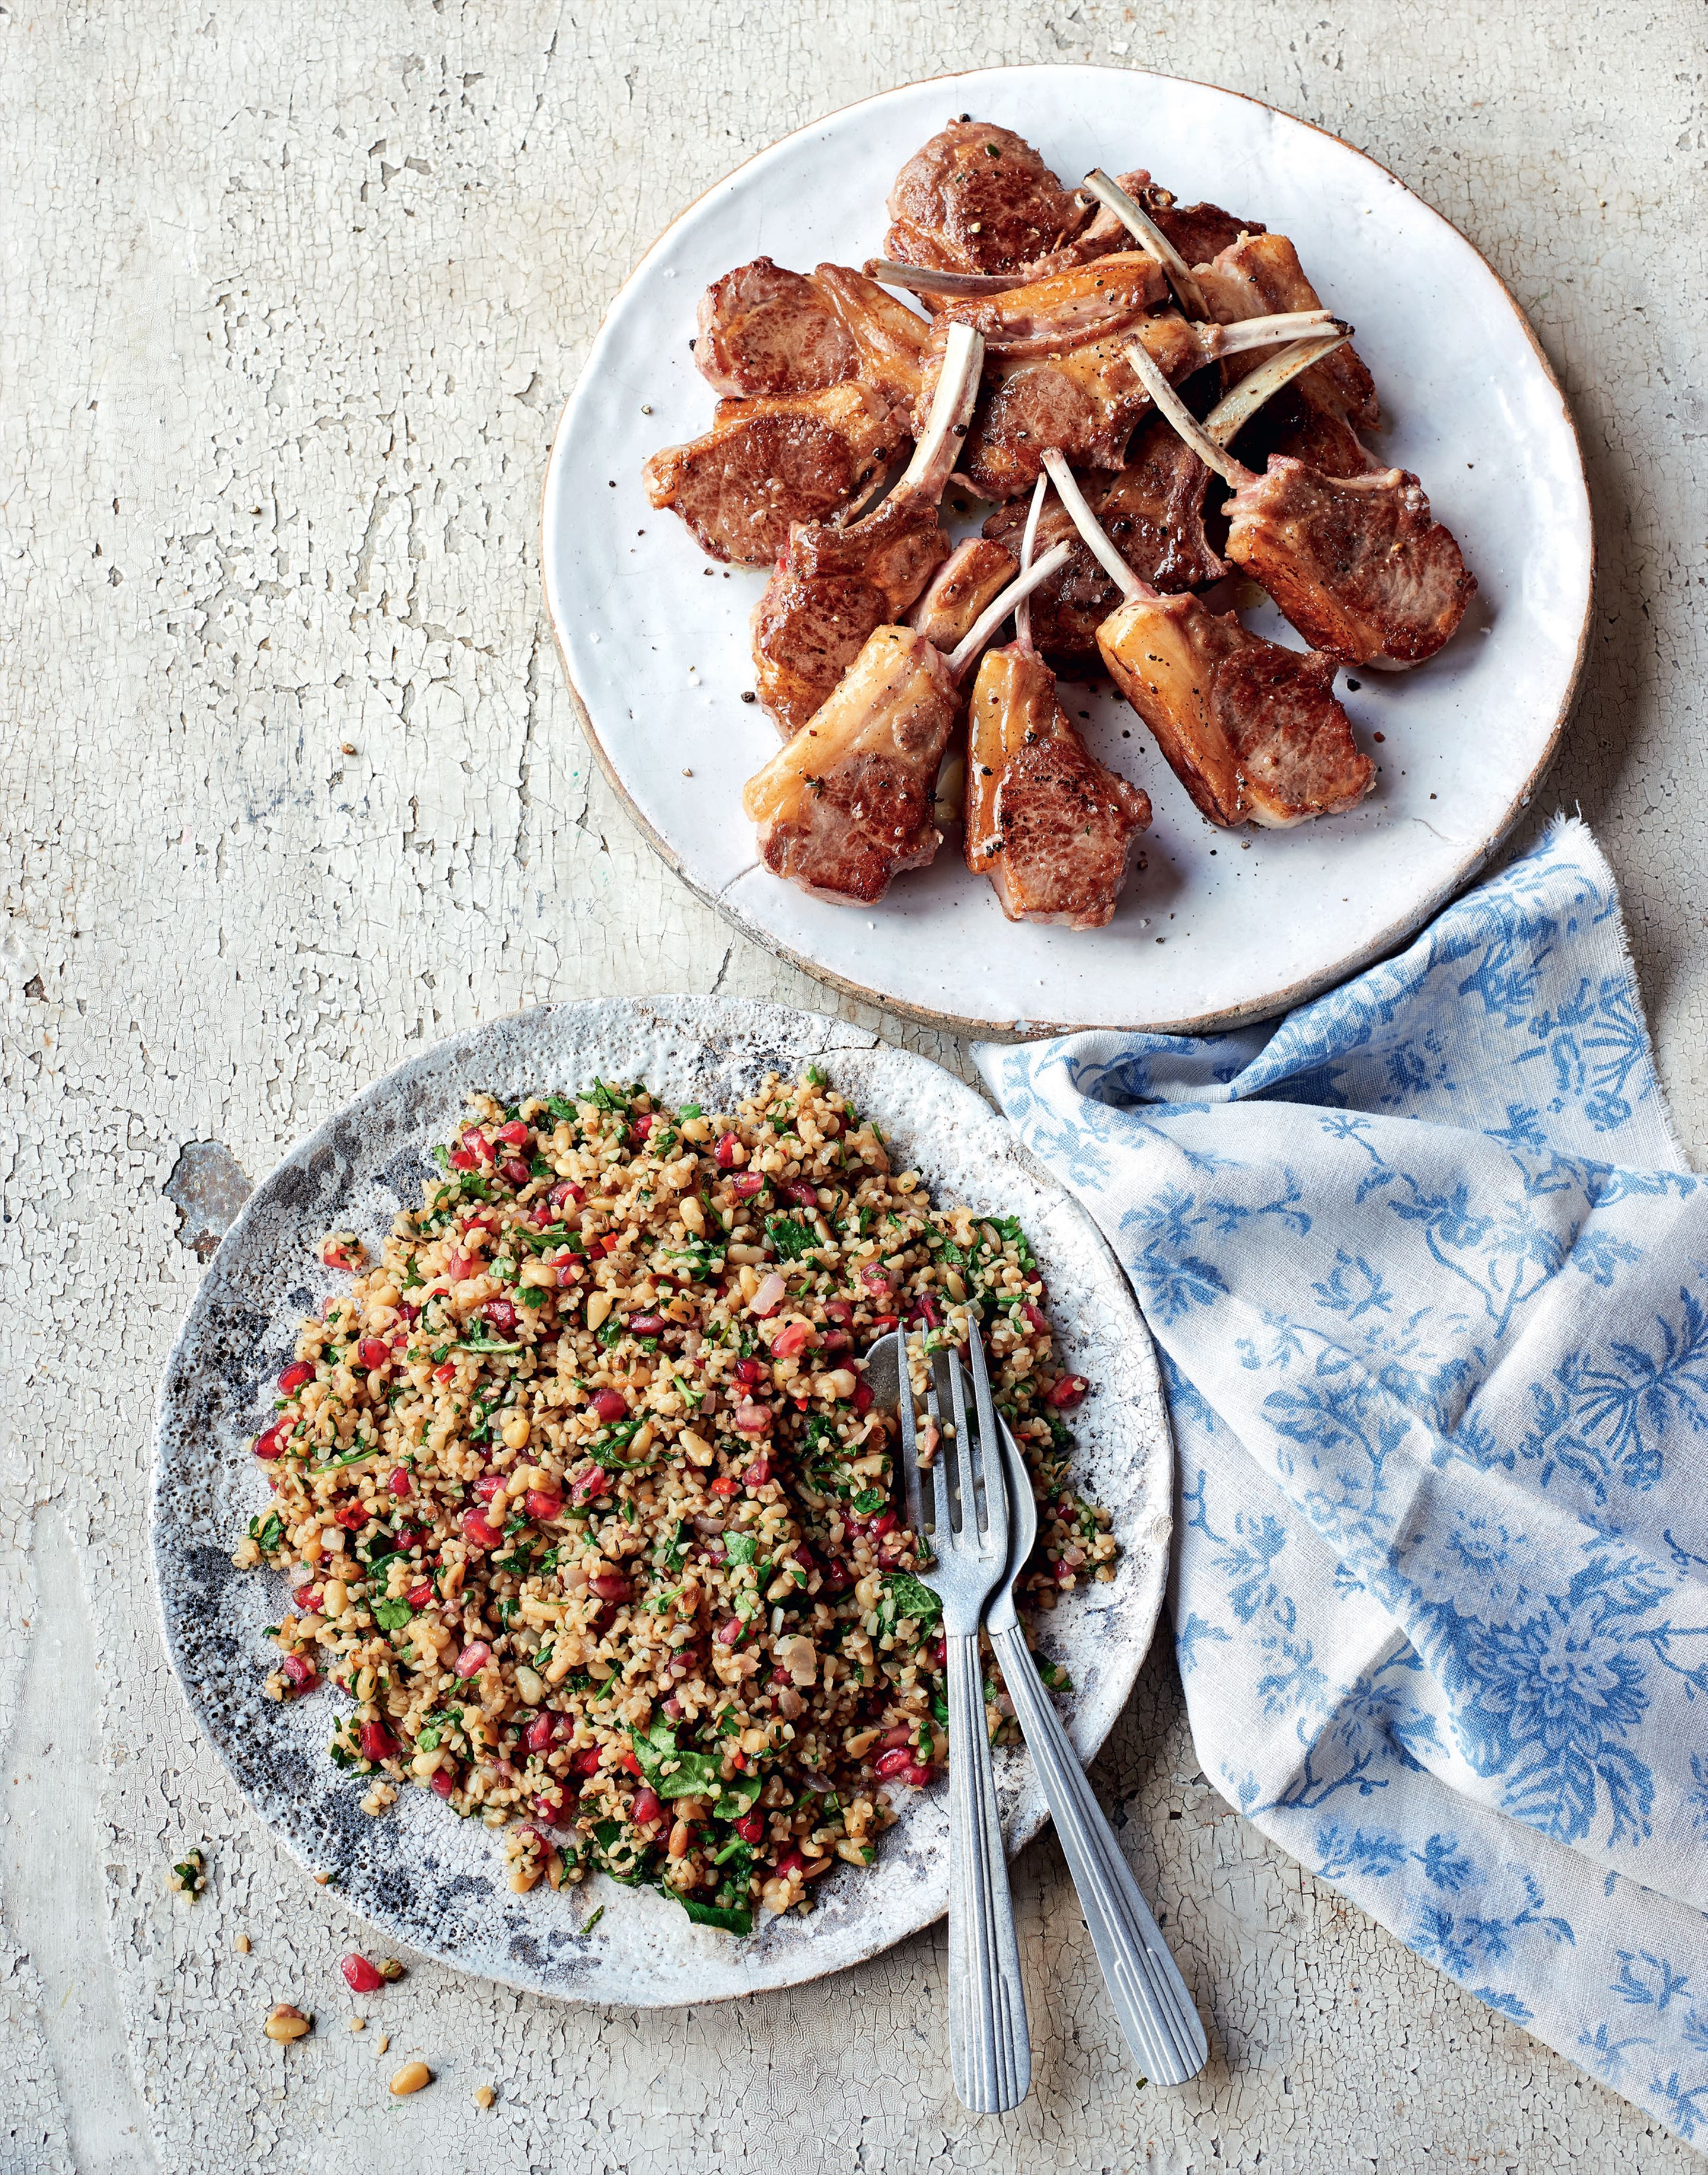 Griddled lamb cutlets with pine nut & pomegranate tabbouleh